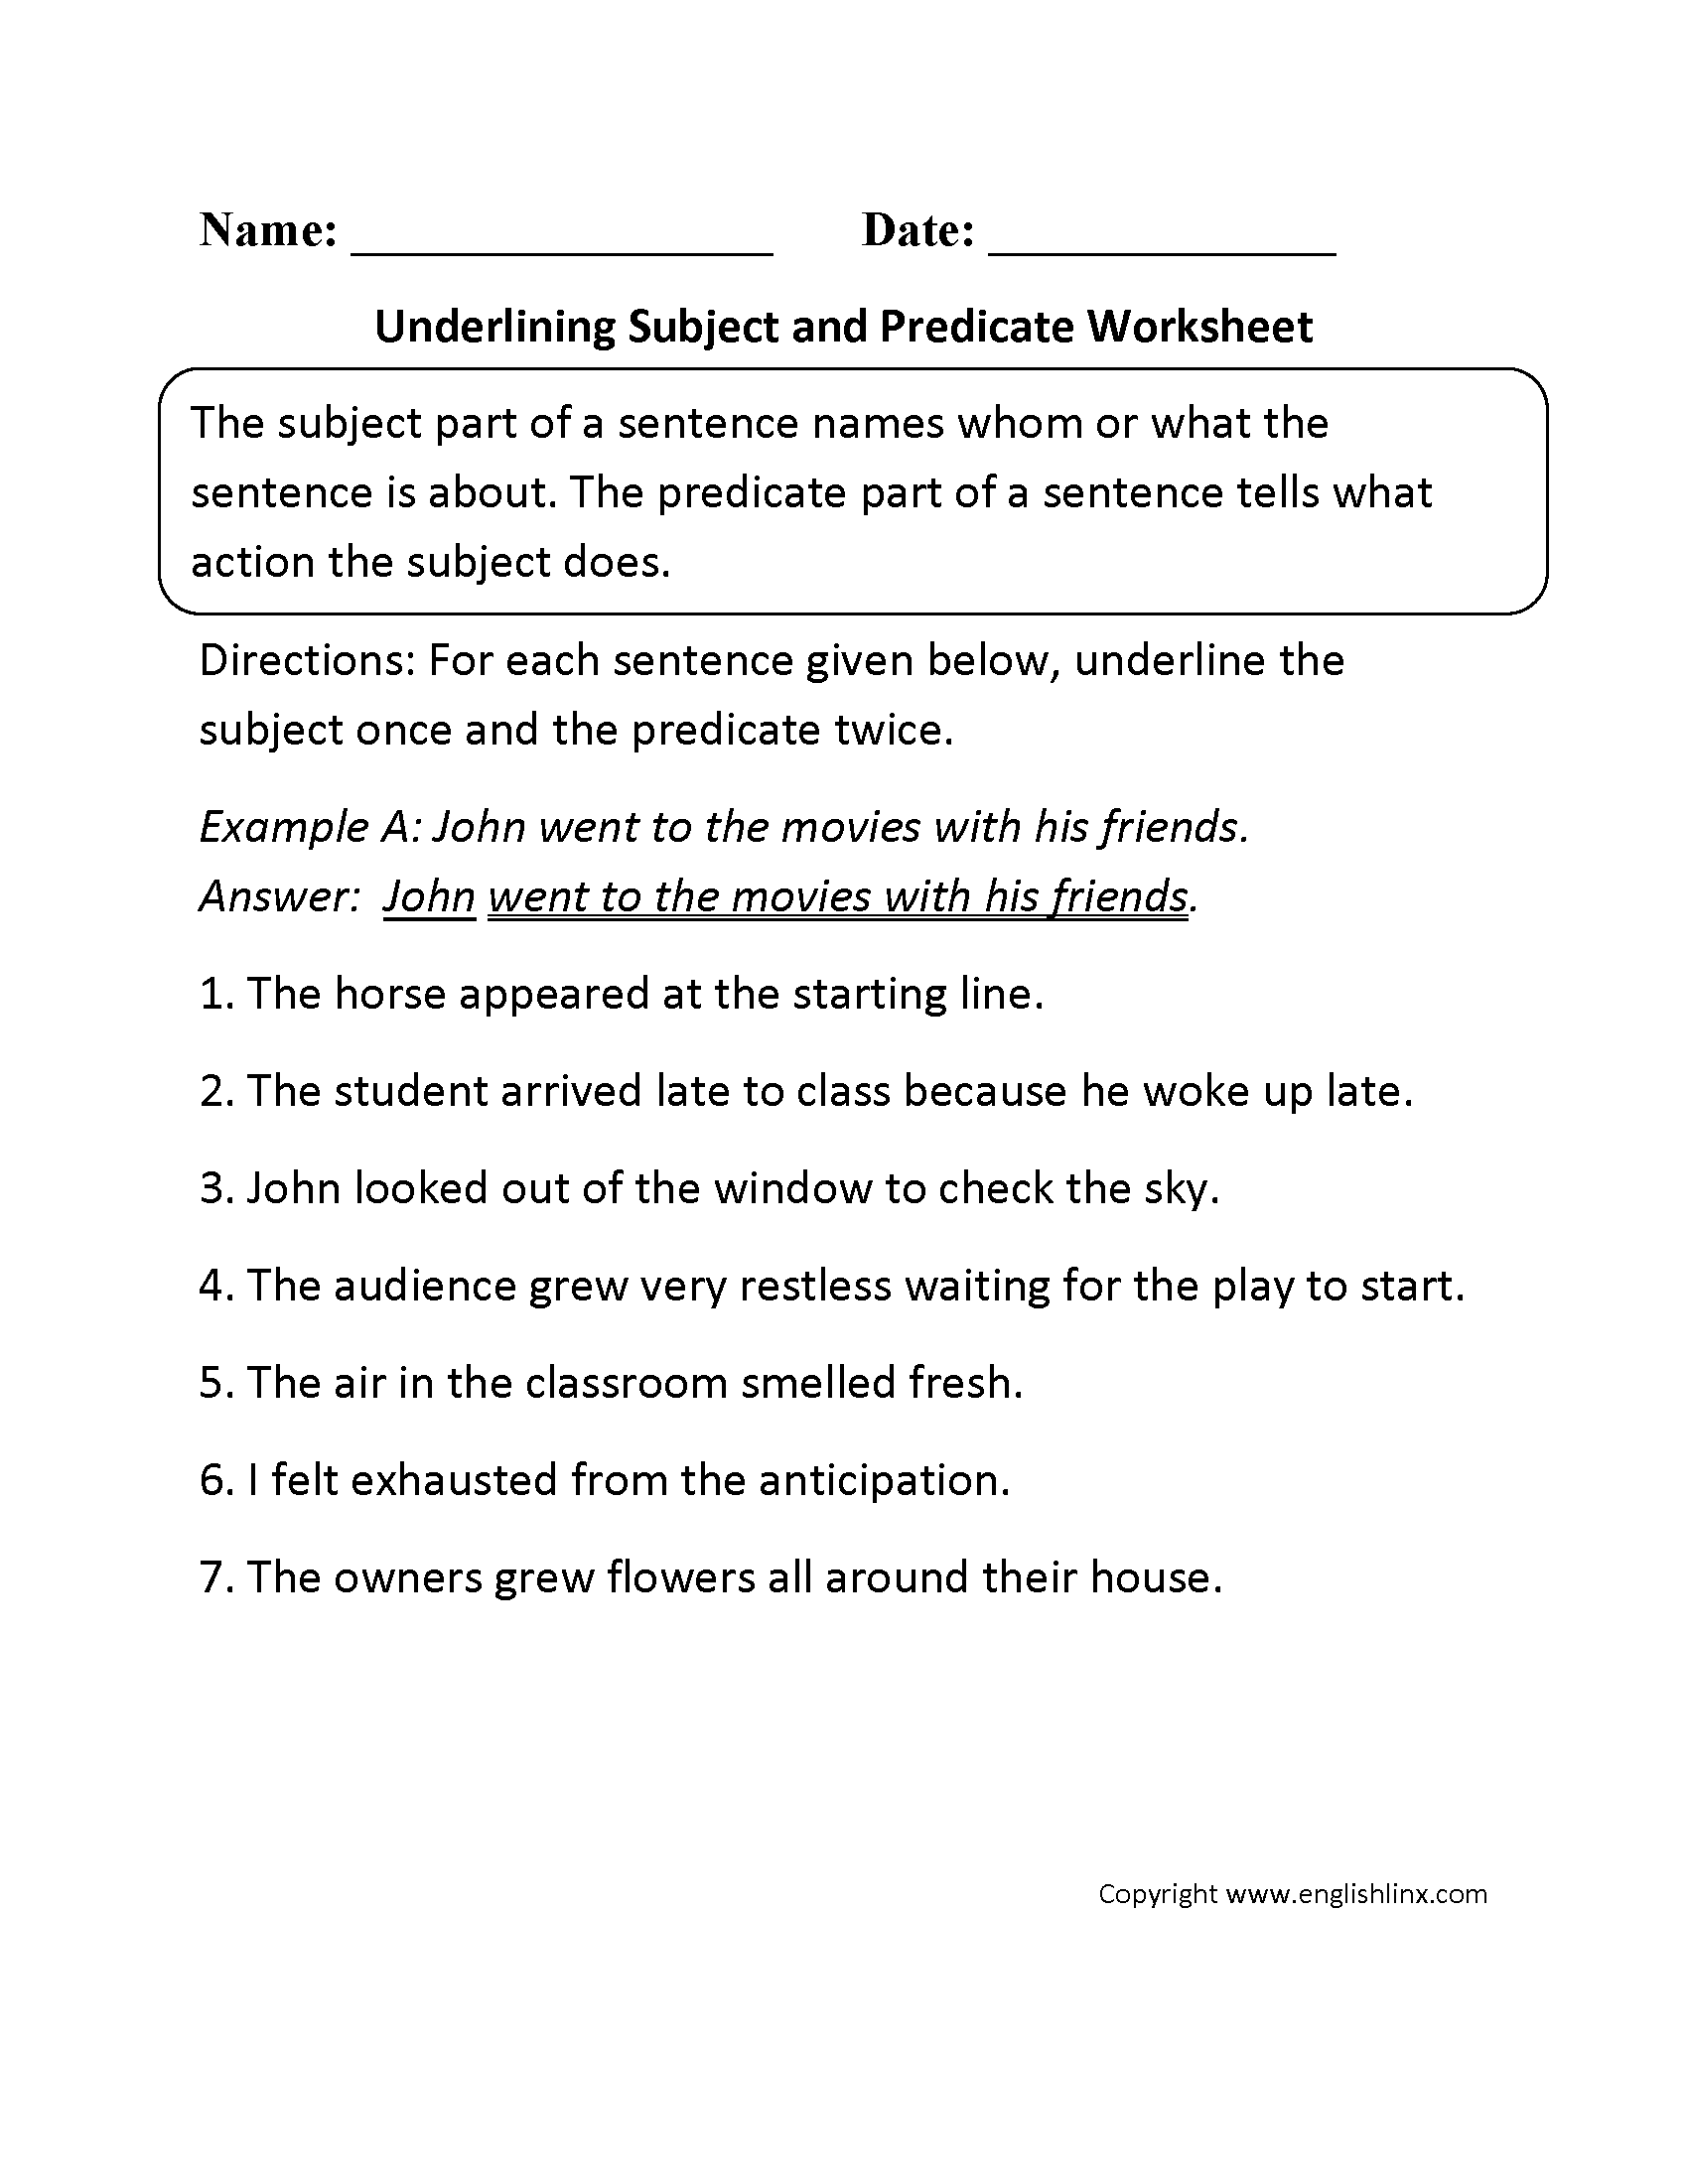 Worksheets Complete Subject And Predicate Worksheets subject and predicate worksheets 4th grade free library worksheet education com